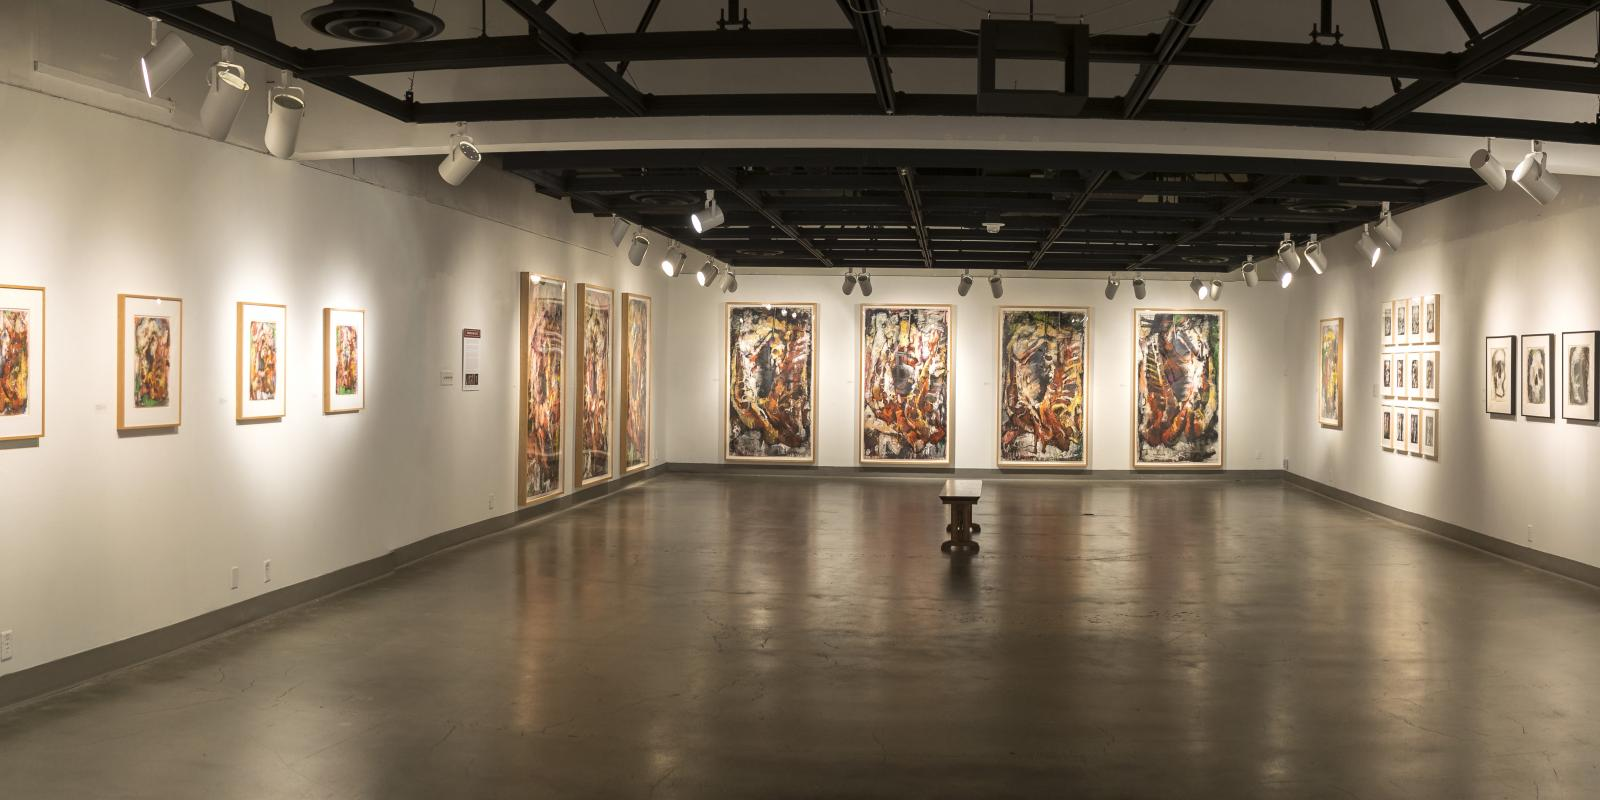 Westside of back gallery, Exhibition: Jim Morphesis: Passion and Presence, Memento and Myth, Nov 18, 2017 - Feb 1, 2018, Curator: Michele Cairella Fillmore, W. Keith & Janet Kellogg Art Gallery, Cal Poly Pomona. [Panoramic of the back gallery]